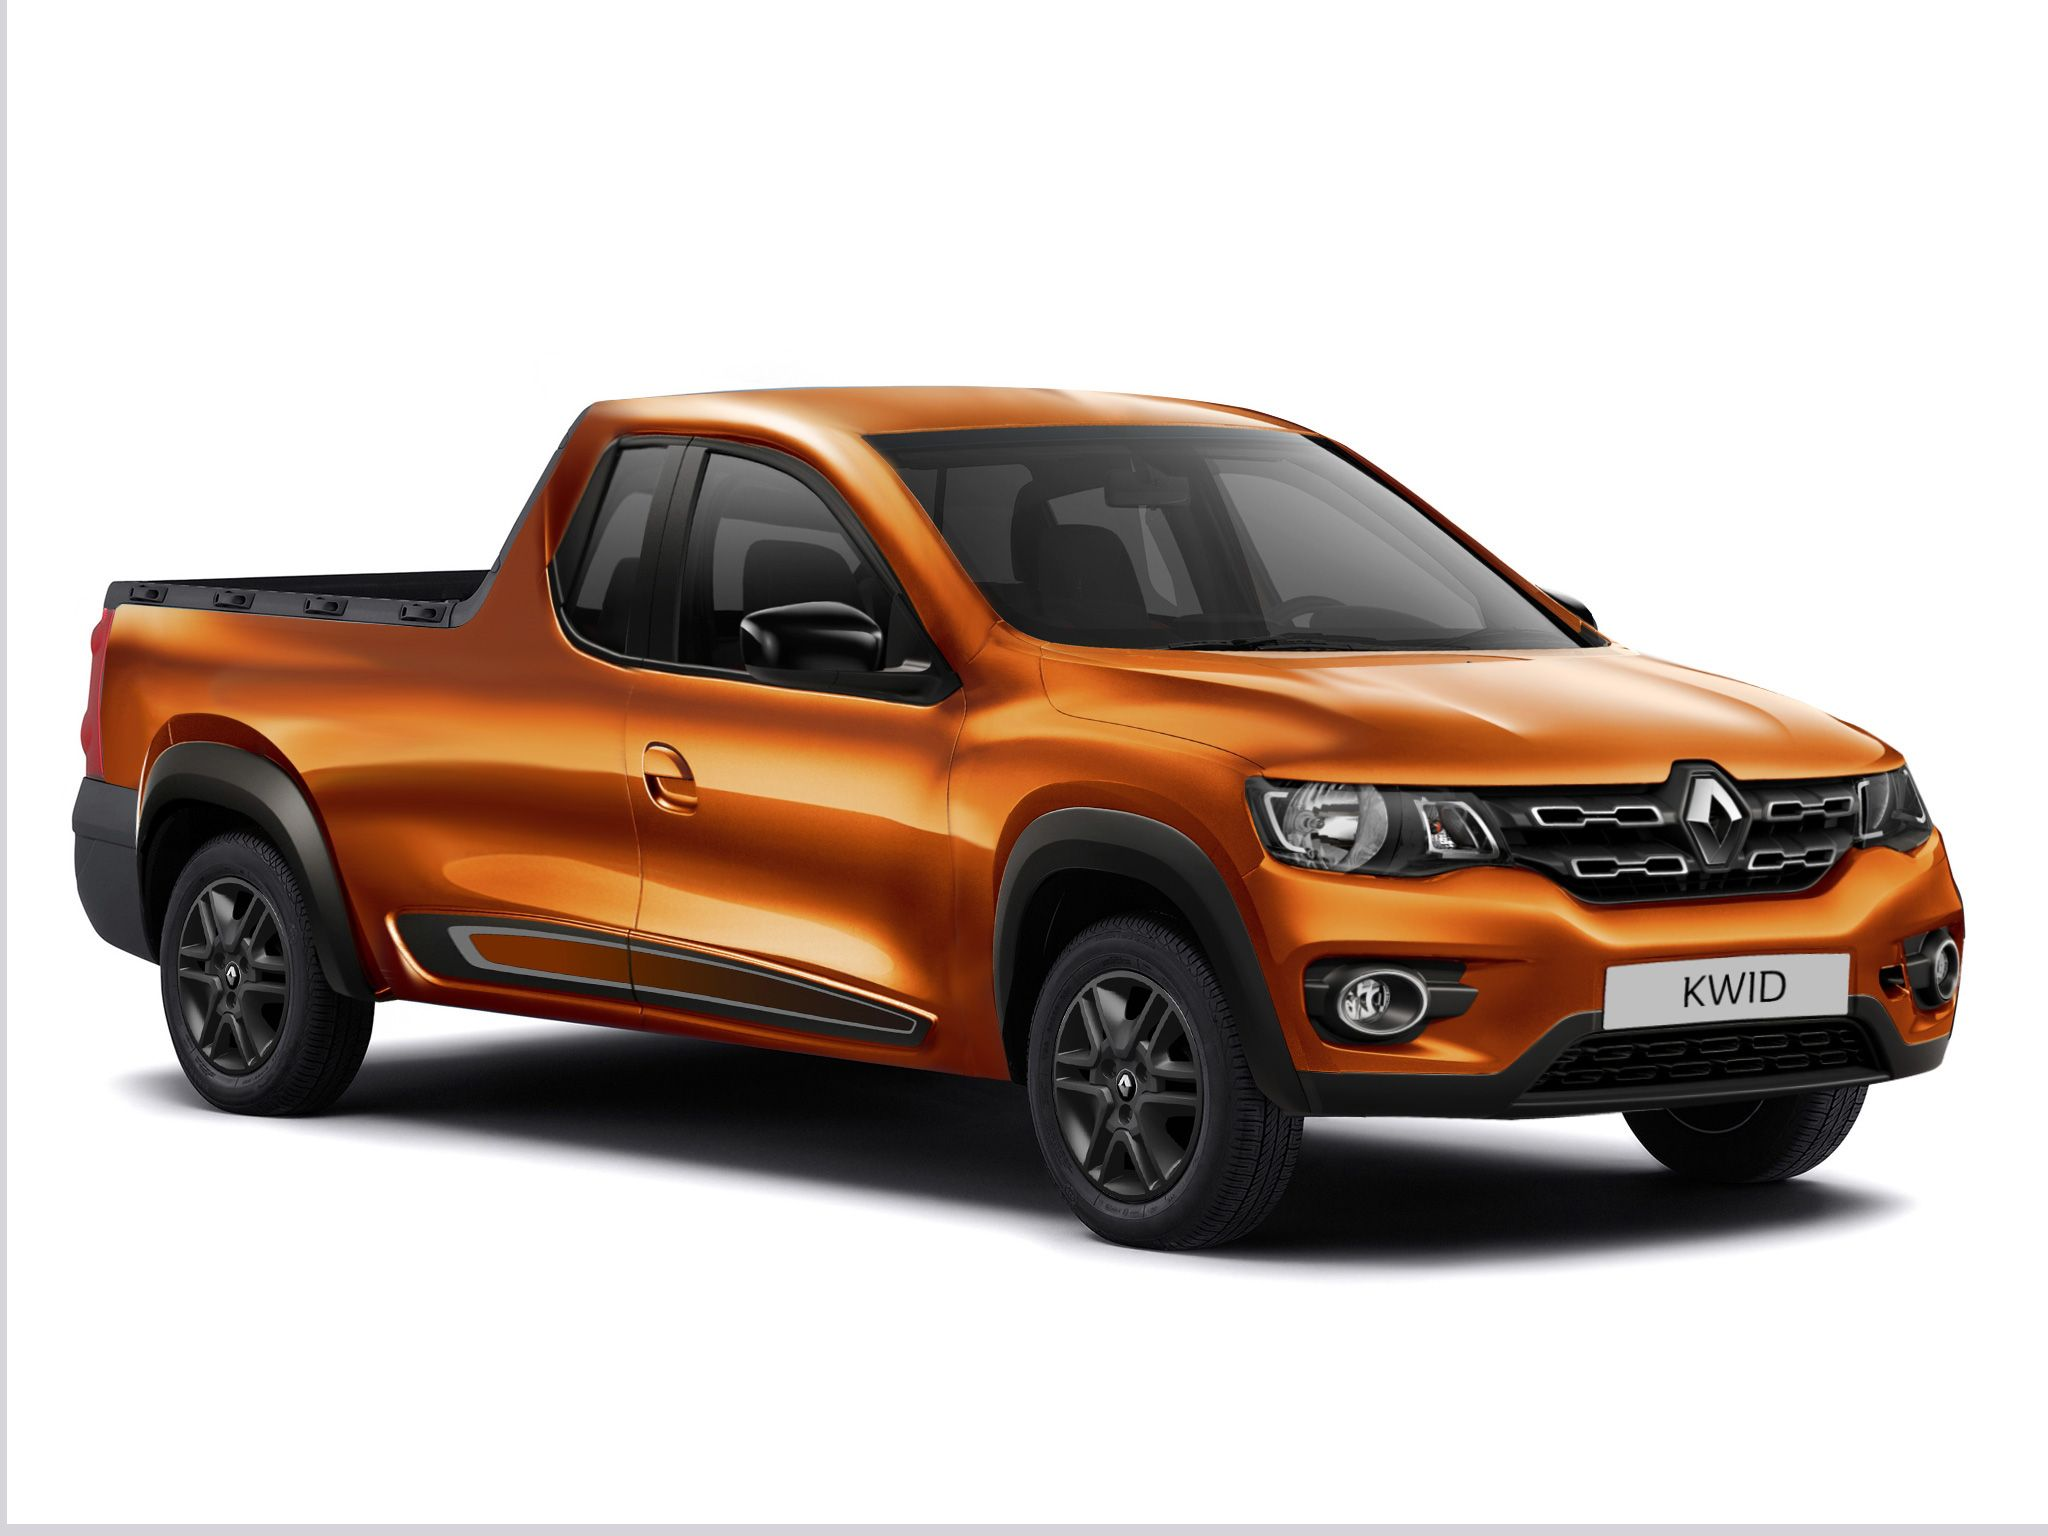 Renault Kwid Suv & Pick-up | Suv, Renault, Toy car